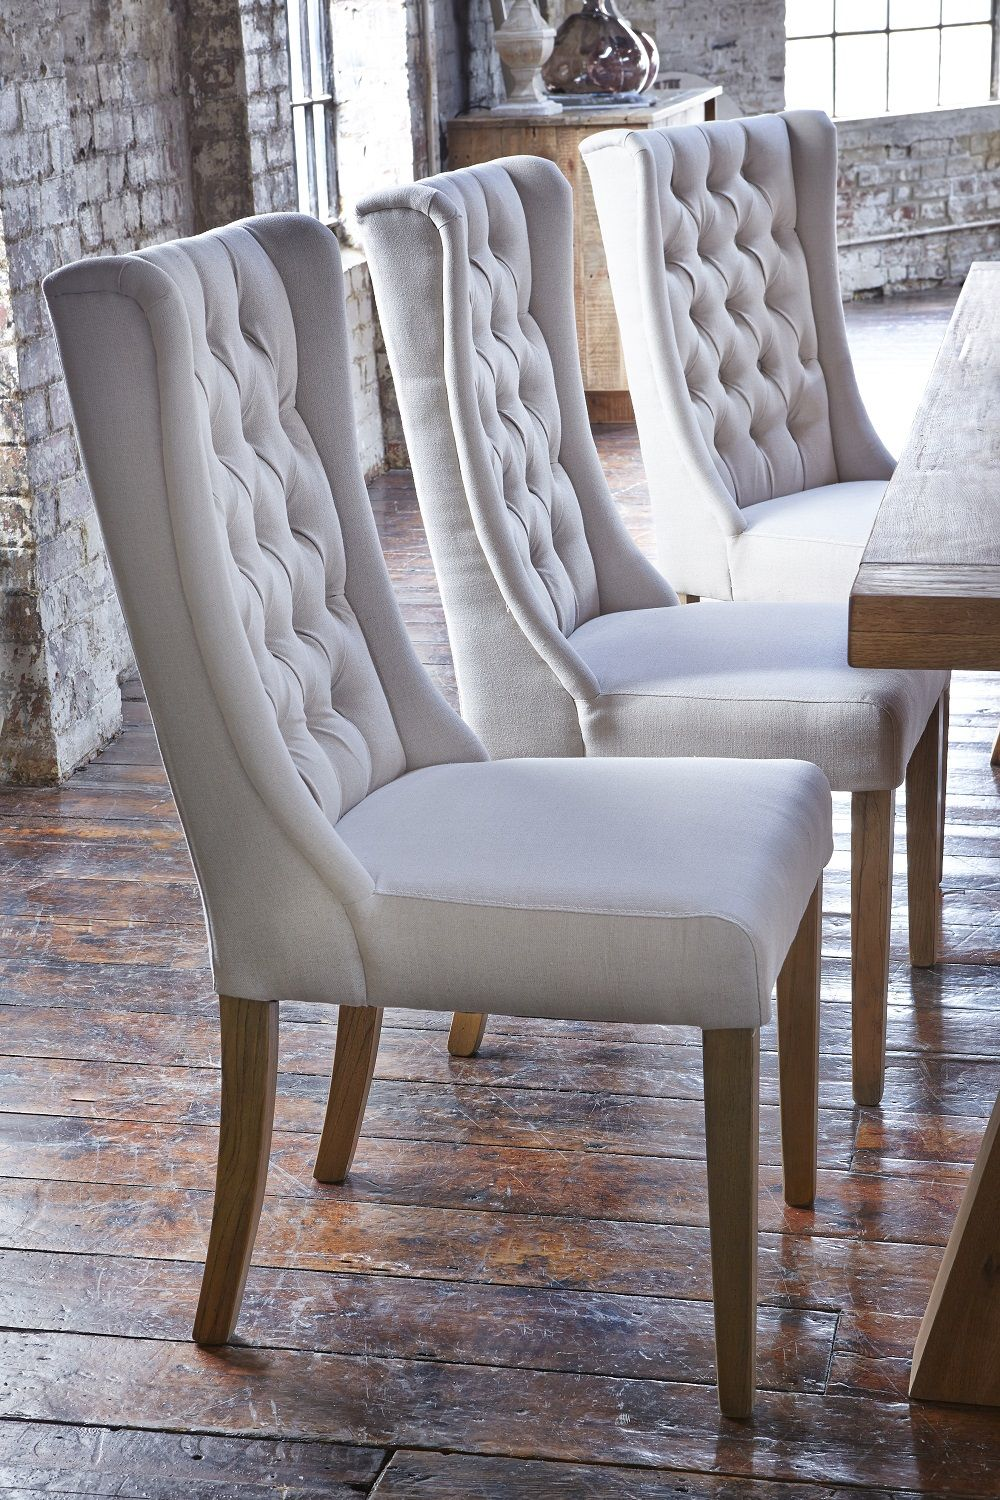 Upholstered, Winged Chairs Will Give Your Dining Room An Air Of Elegance.  We Love The Kipling Chair, With Its Chic Curved Legs.